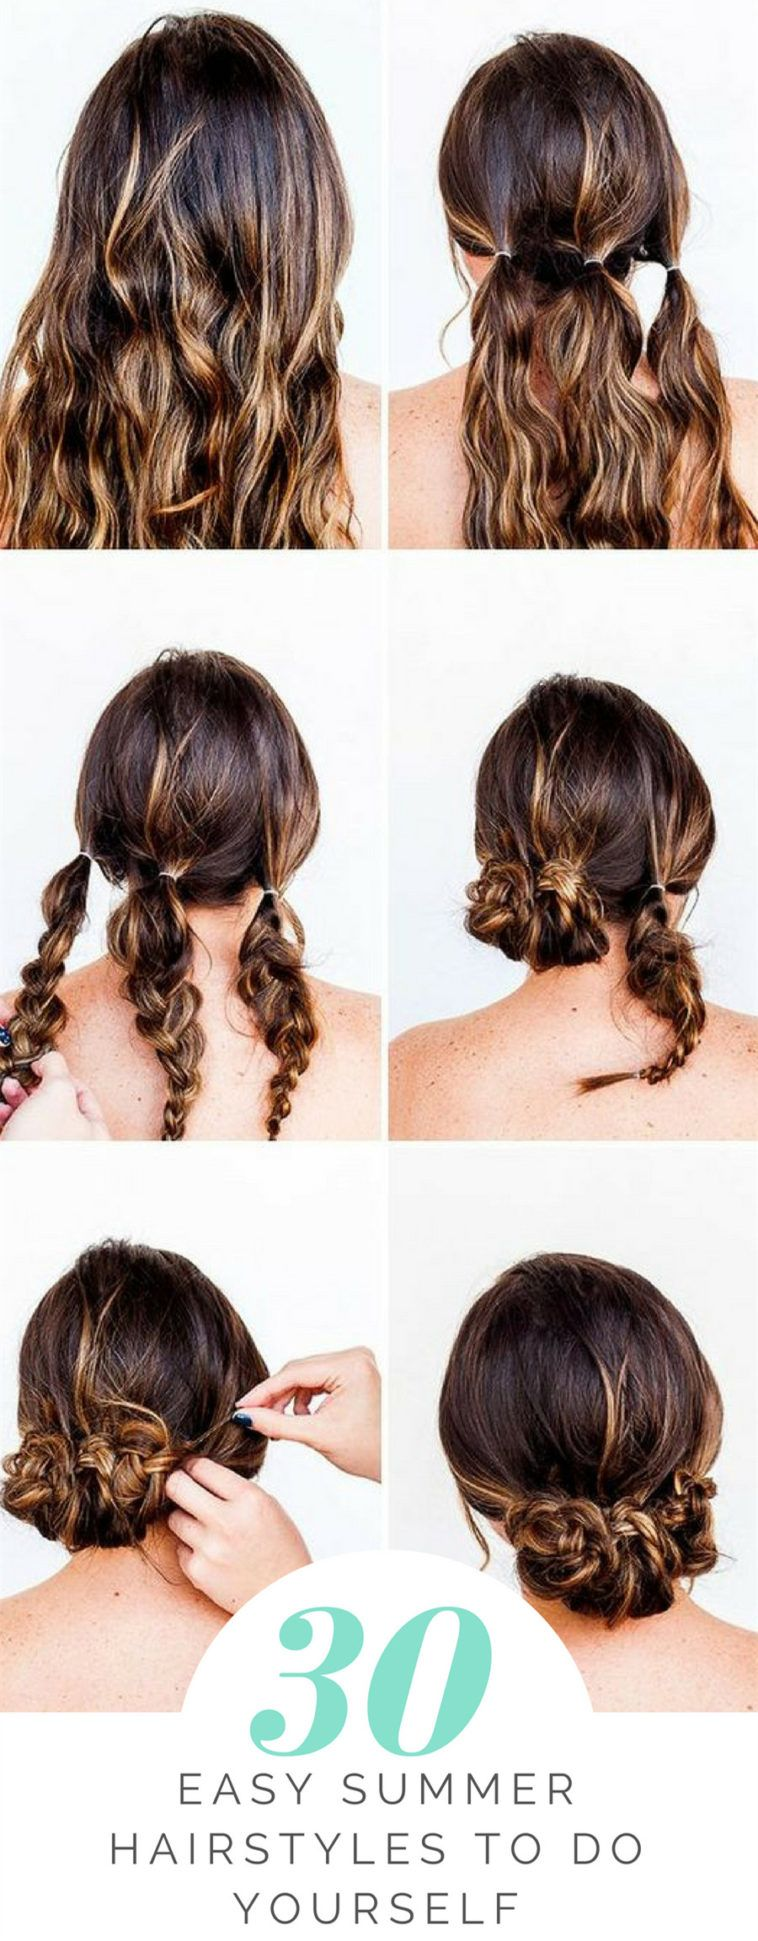 30 Easy Summer Hairstyles To Do Yourself Hair Curly Hair